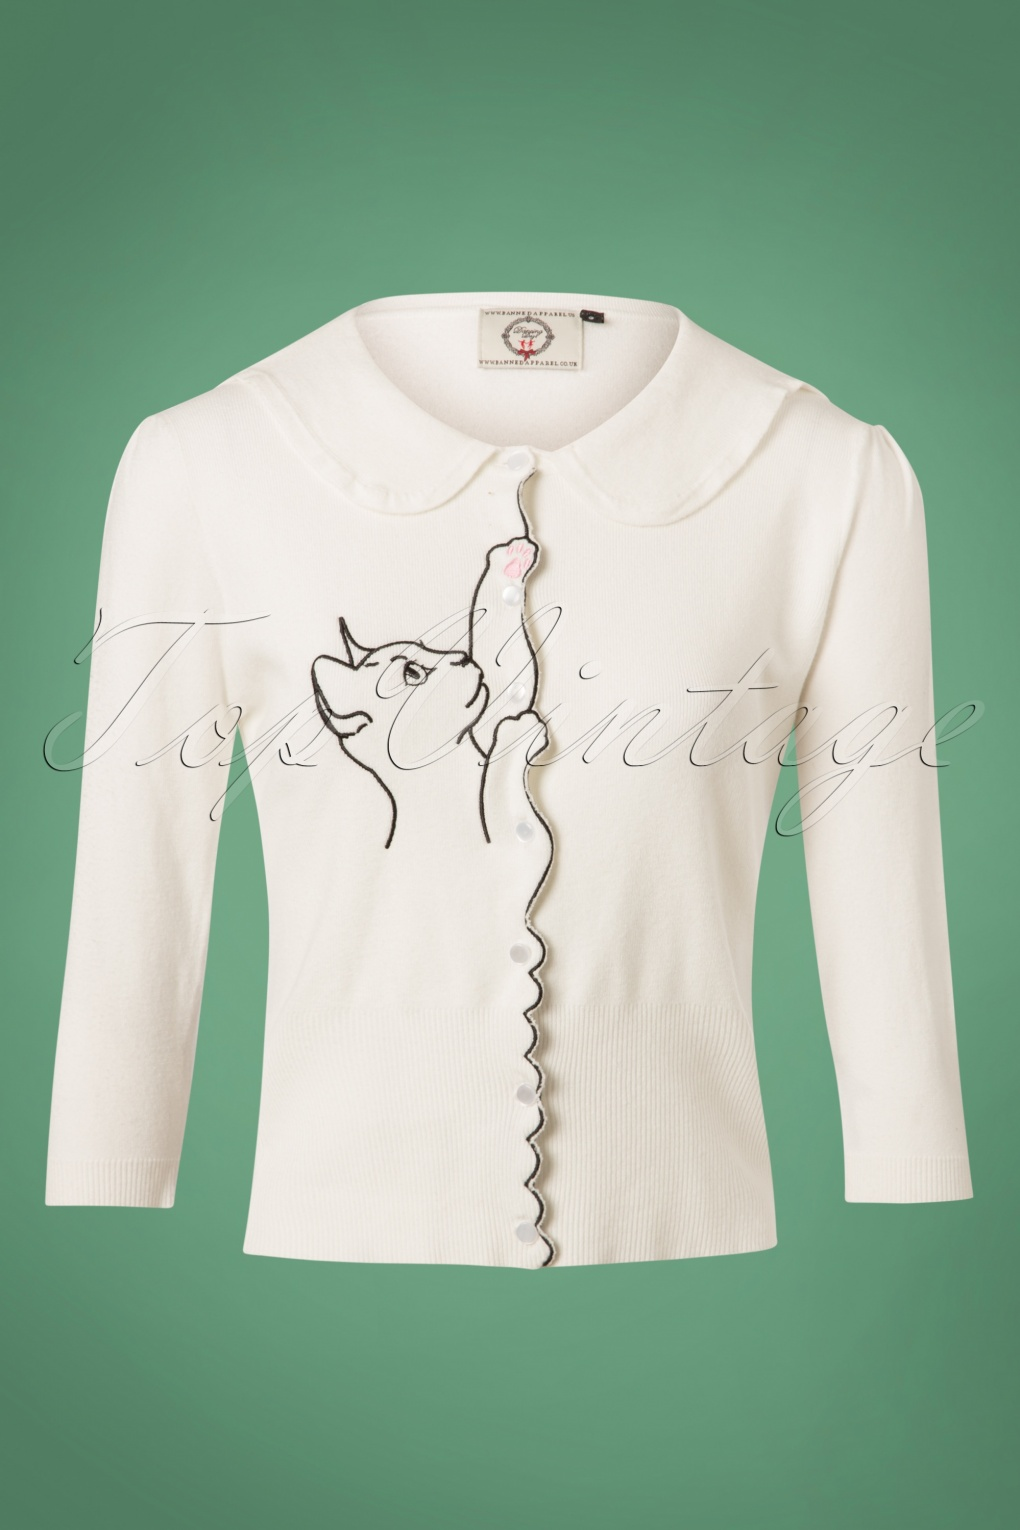 1950s Sweaters, 50s Cardigans, Twin Sweater Sets 60s Cat Scallop Collar Cardigan in Off White £36.86 AT vintagedancer.com